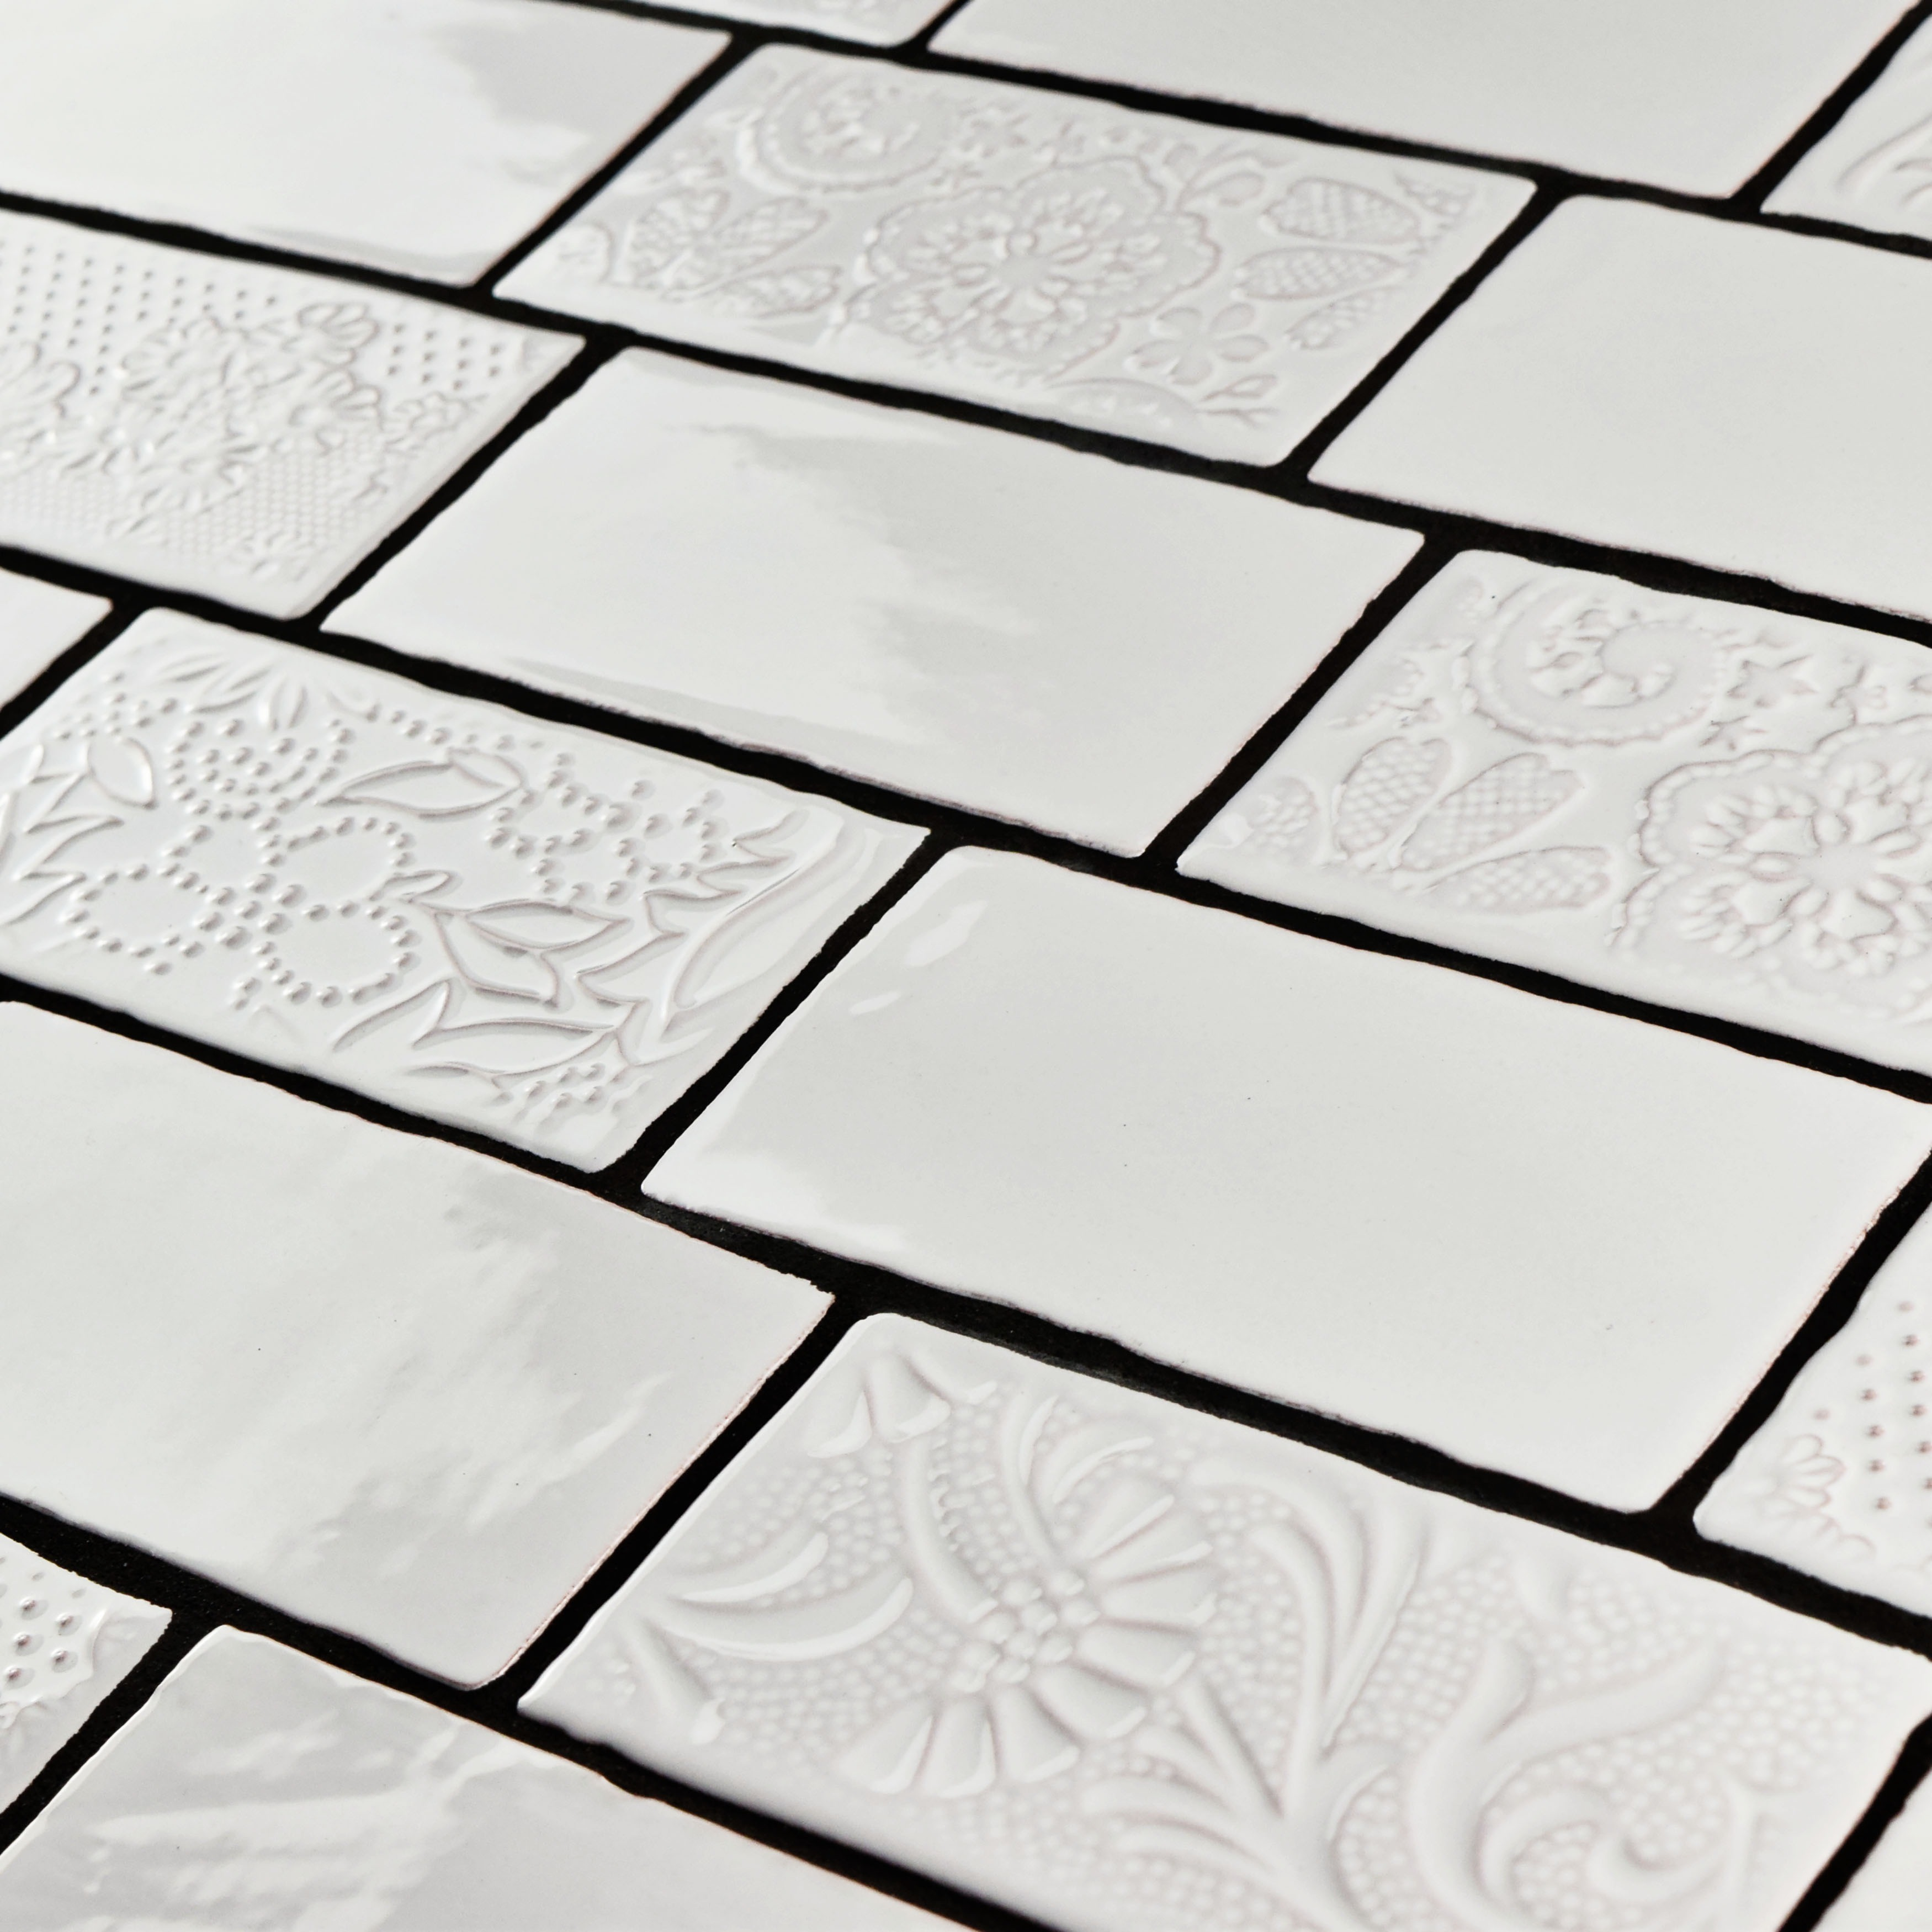 Somertile 3x6 Inch Antiguo Special Milk Ceramic Wall Tile Pack Of 8 Free Shipping On Orders Over 45 18039590